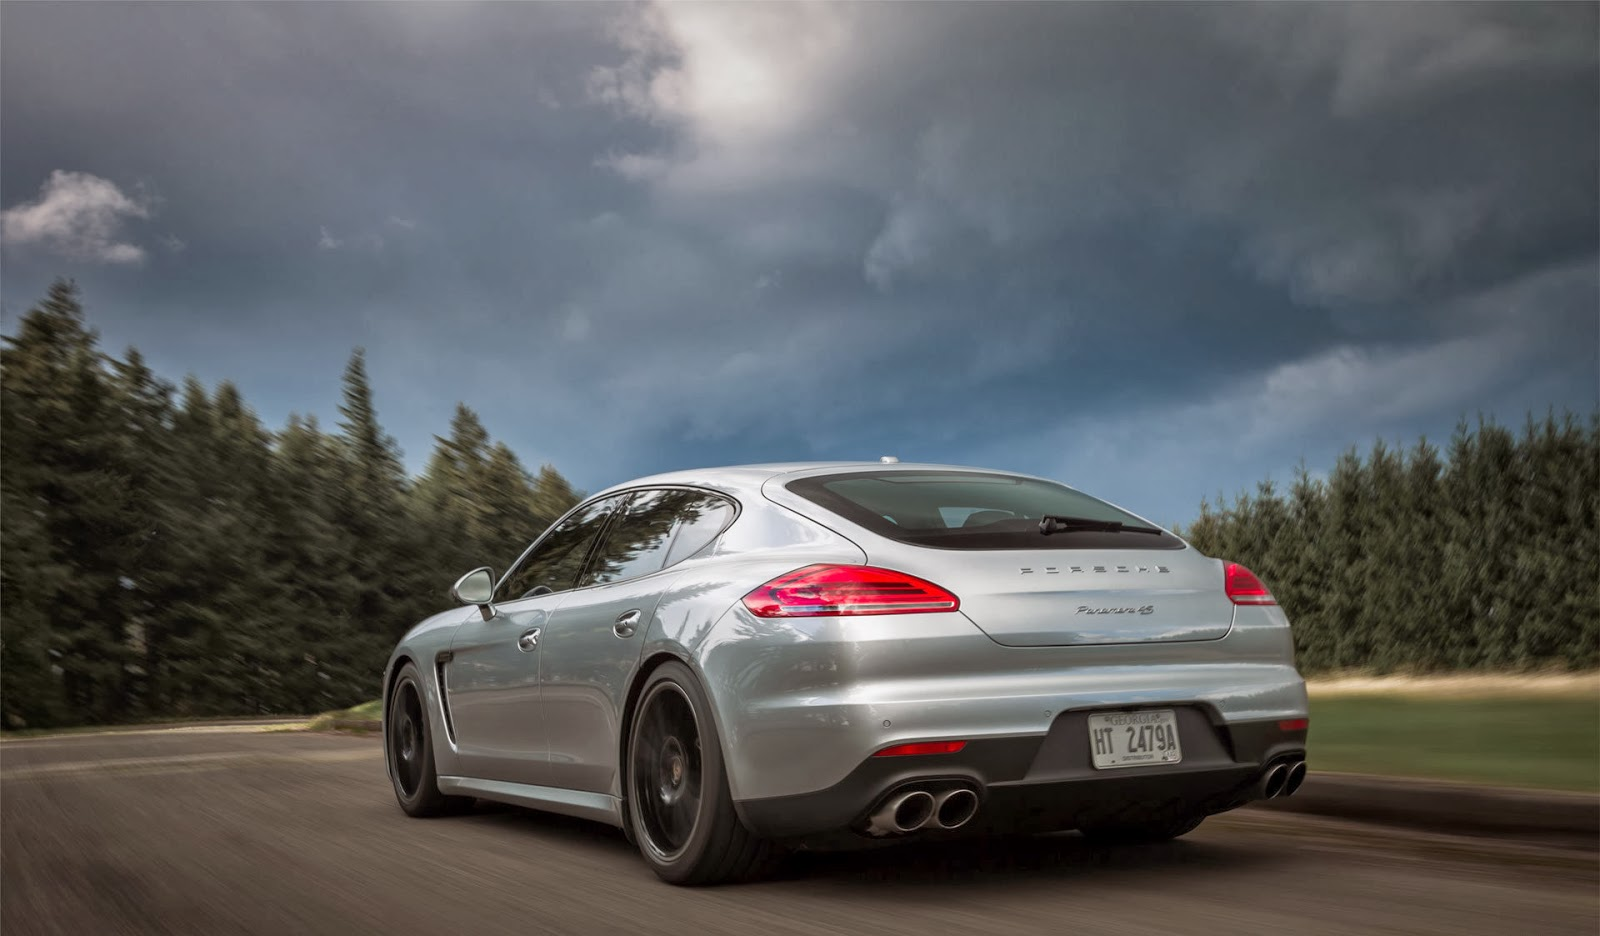 the 2014 panamera gts now accelerates from zero to 60 mph one tenth of a second faster 42 seconds